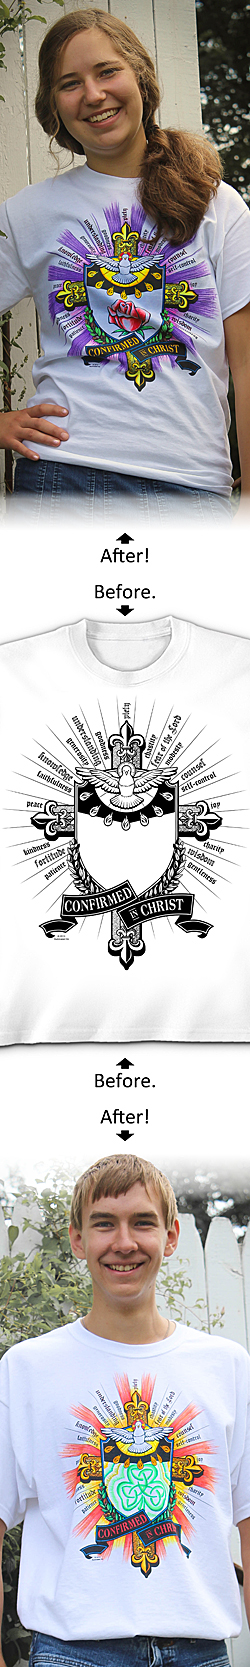 SanctaTee - Confirmed In Christ